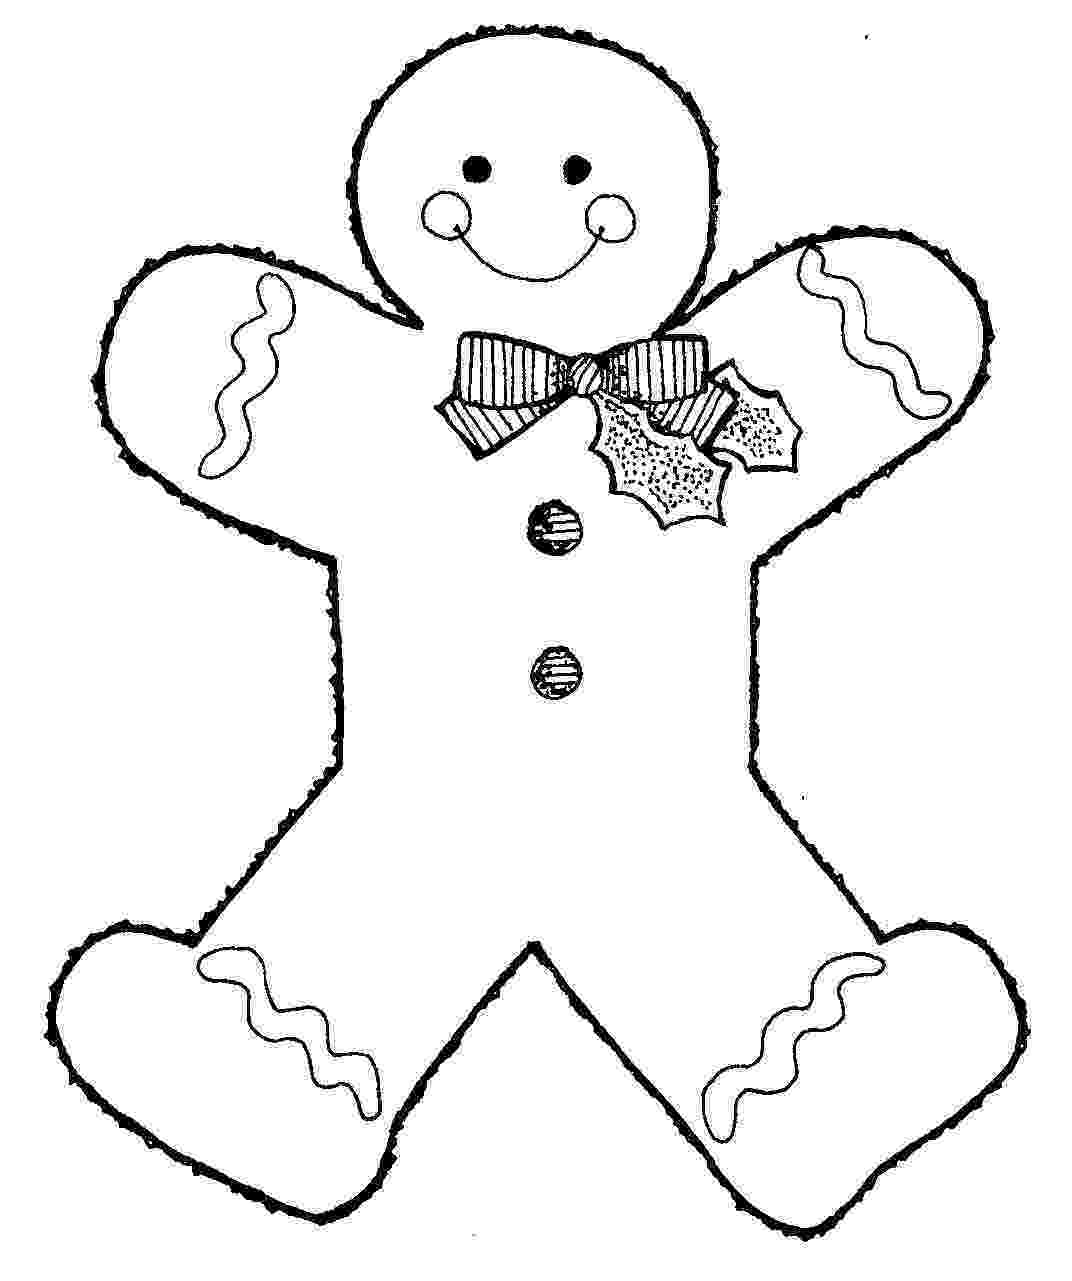 gingerbread color free printable gingerbread man coloring pages for kids color gingerbread 1 3